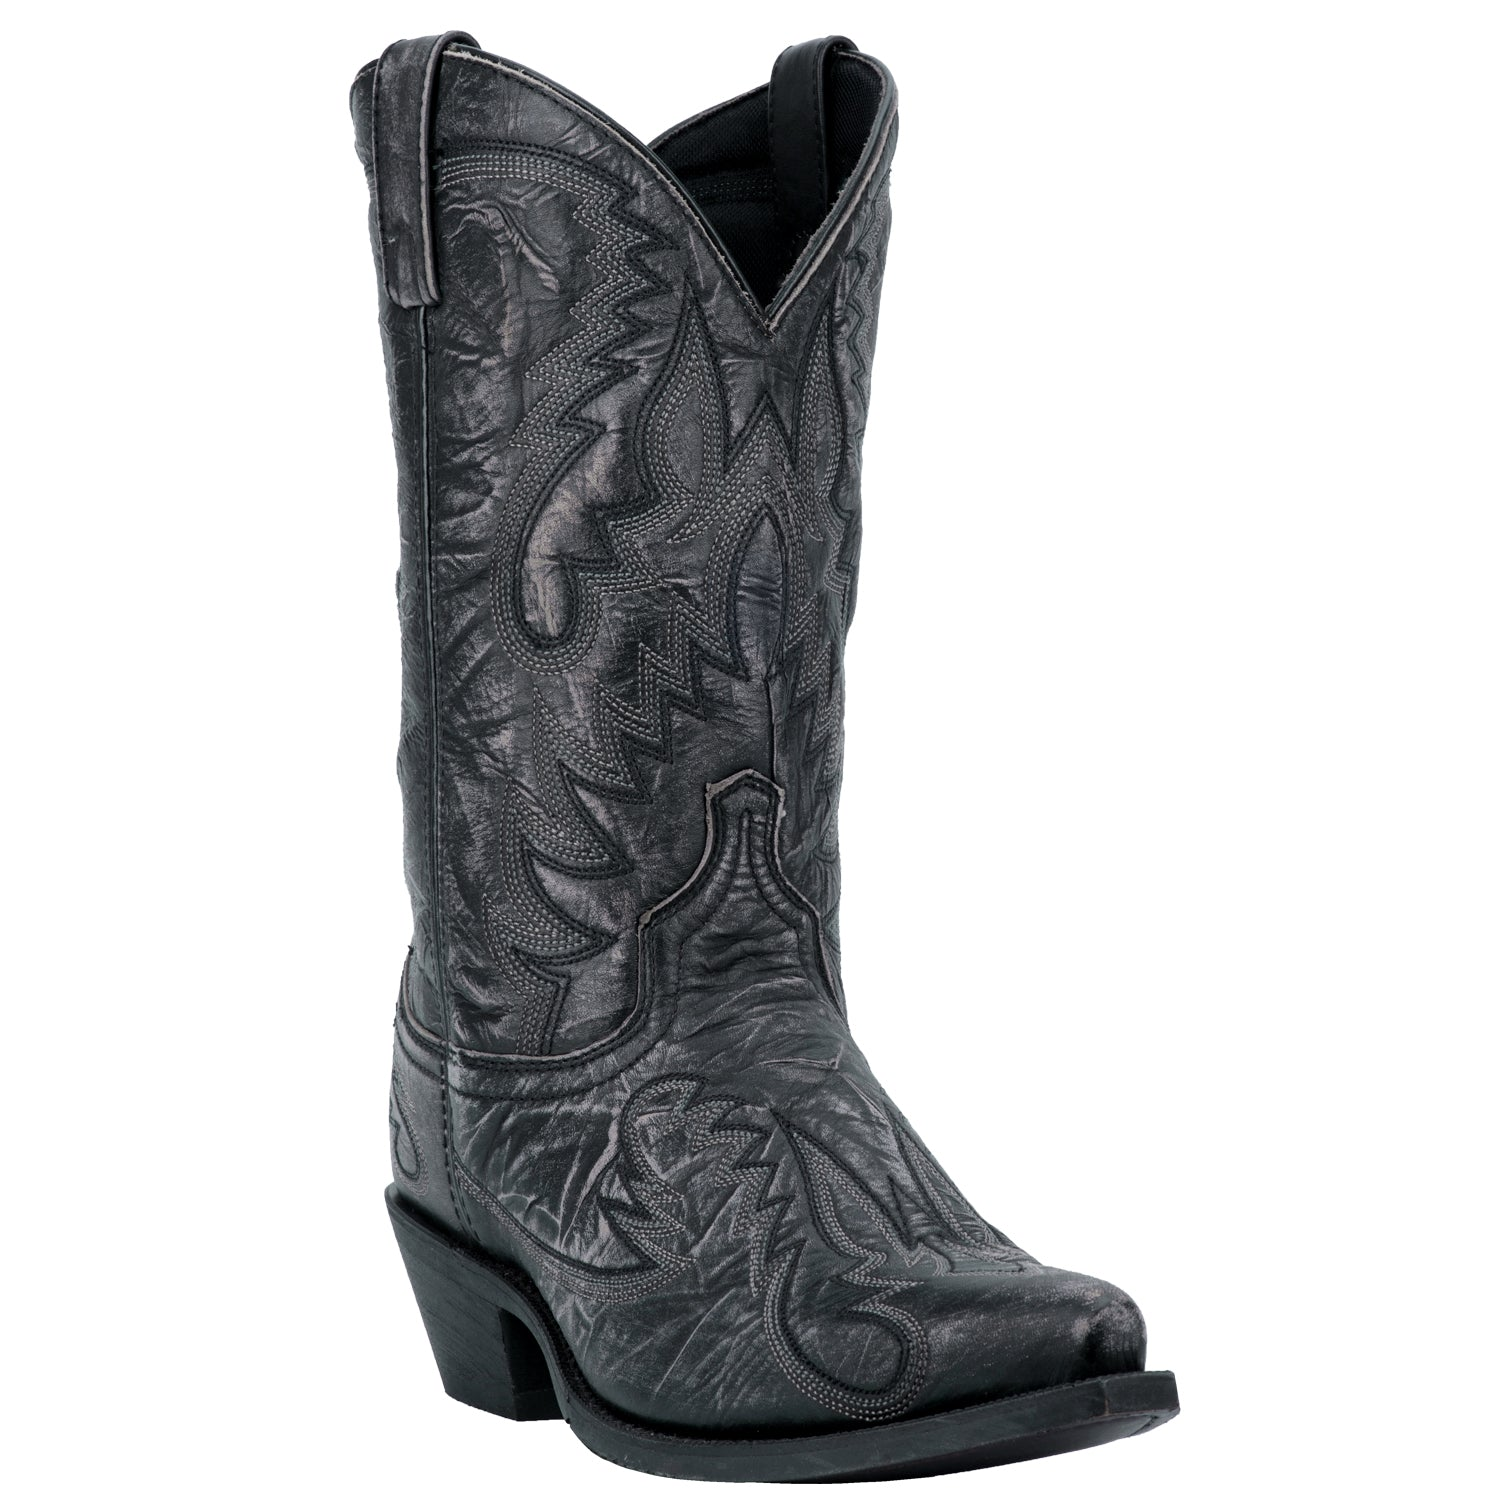 GARRETT LEATHER BOOT 4253533569066